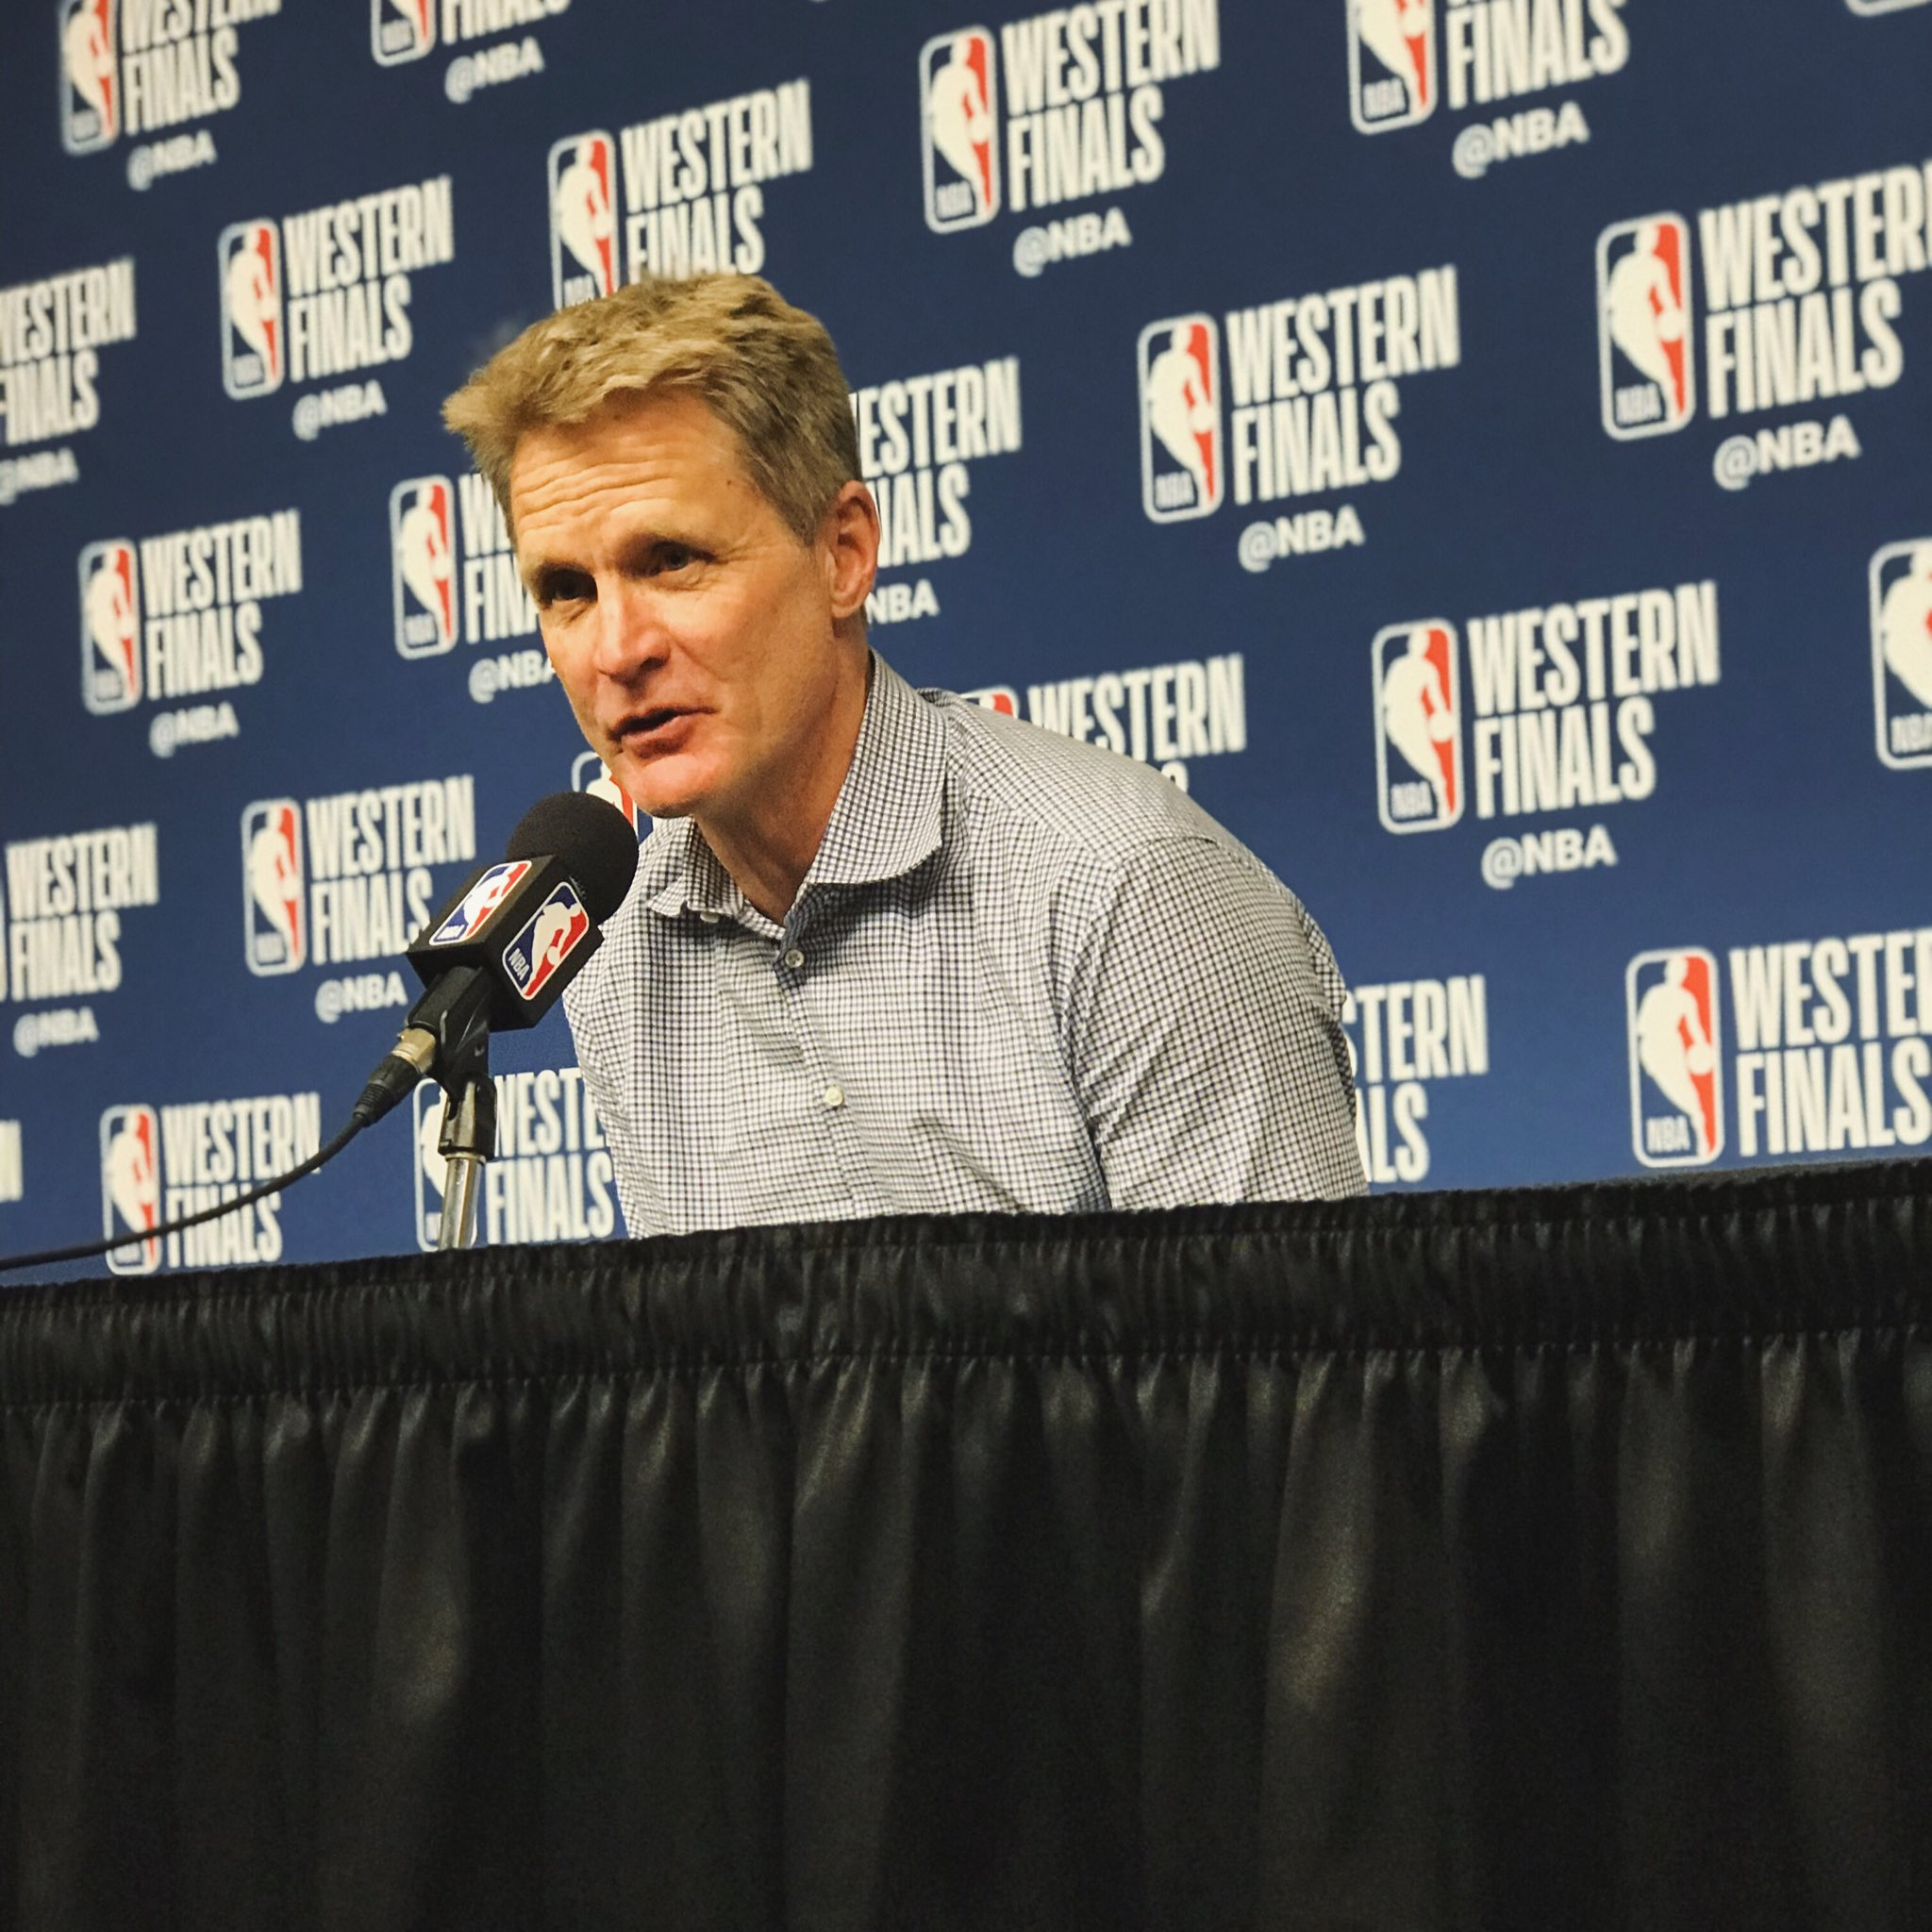 """I'm extremely confident that we're going to take care of business."" - Coach Kerr on Game 6 https://t.co/TYqn8D6rsY"